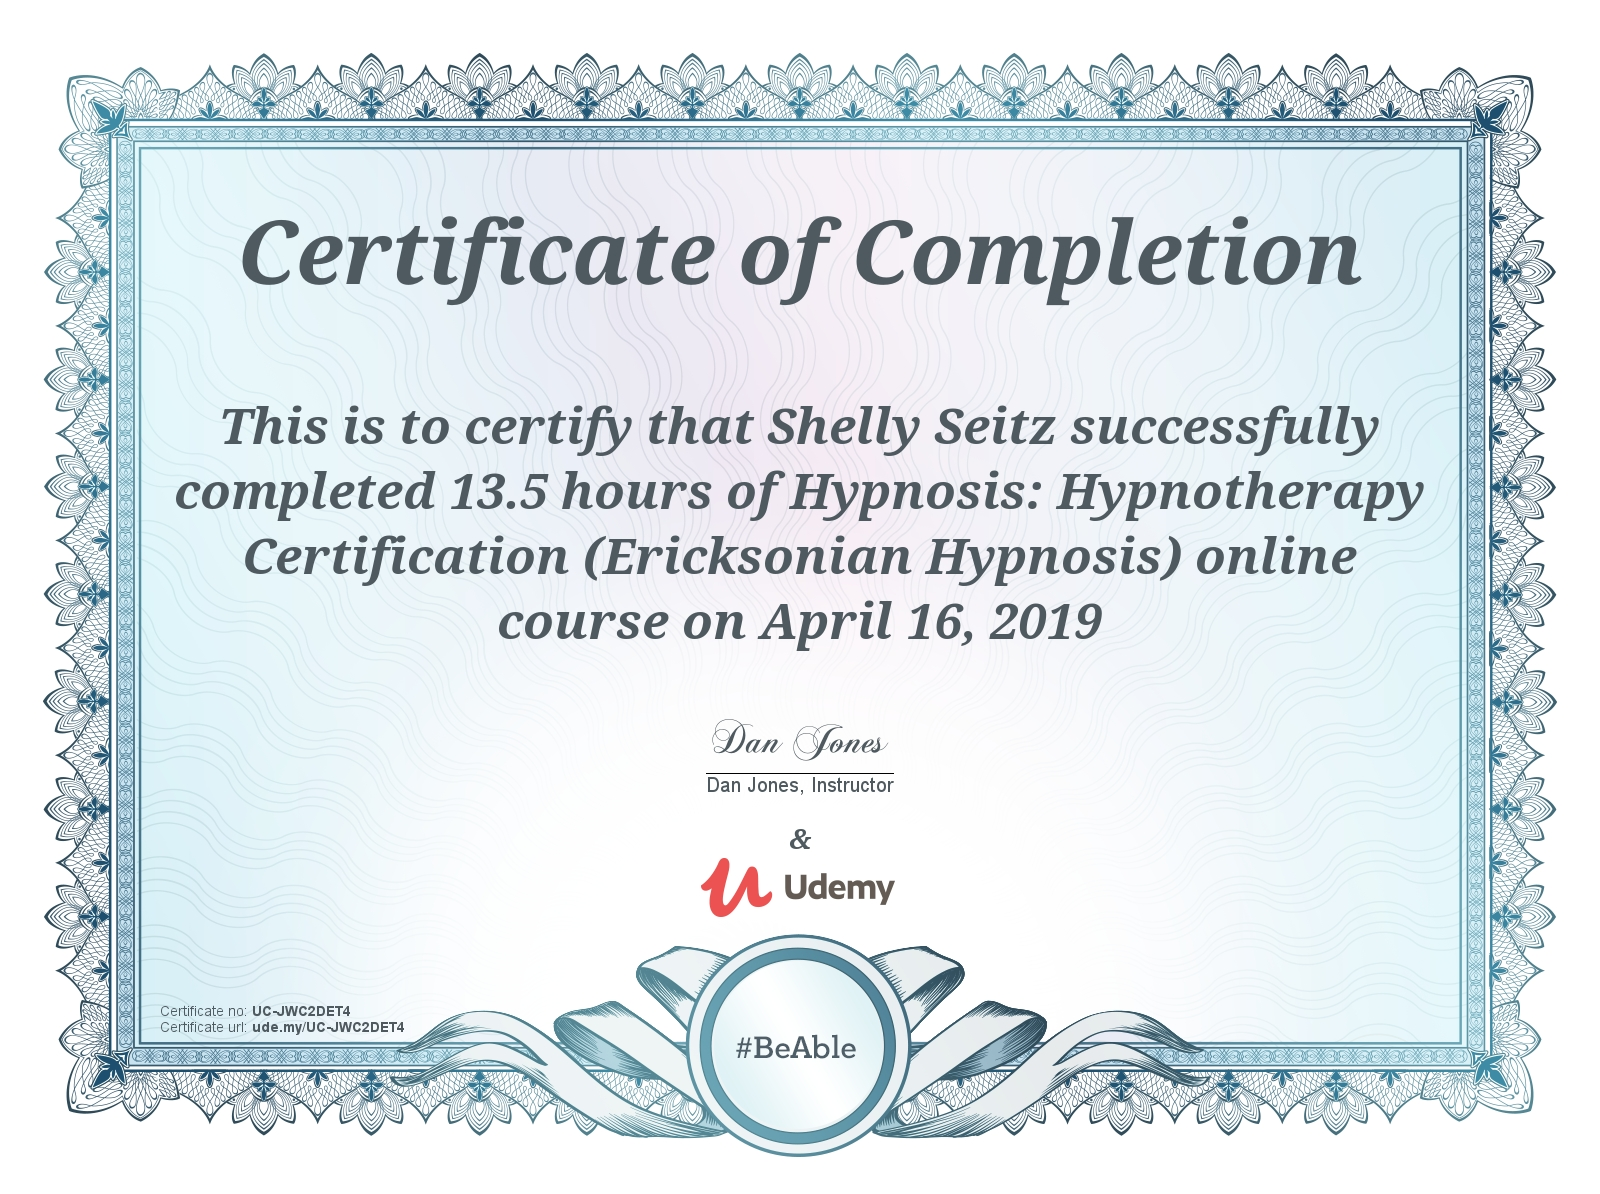 Ericksonian Hypnosis Hypnotherapy